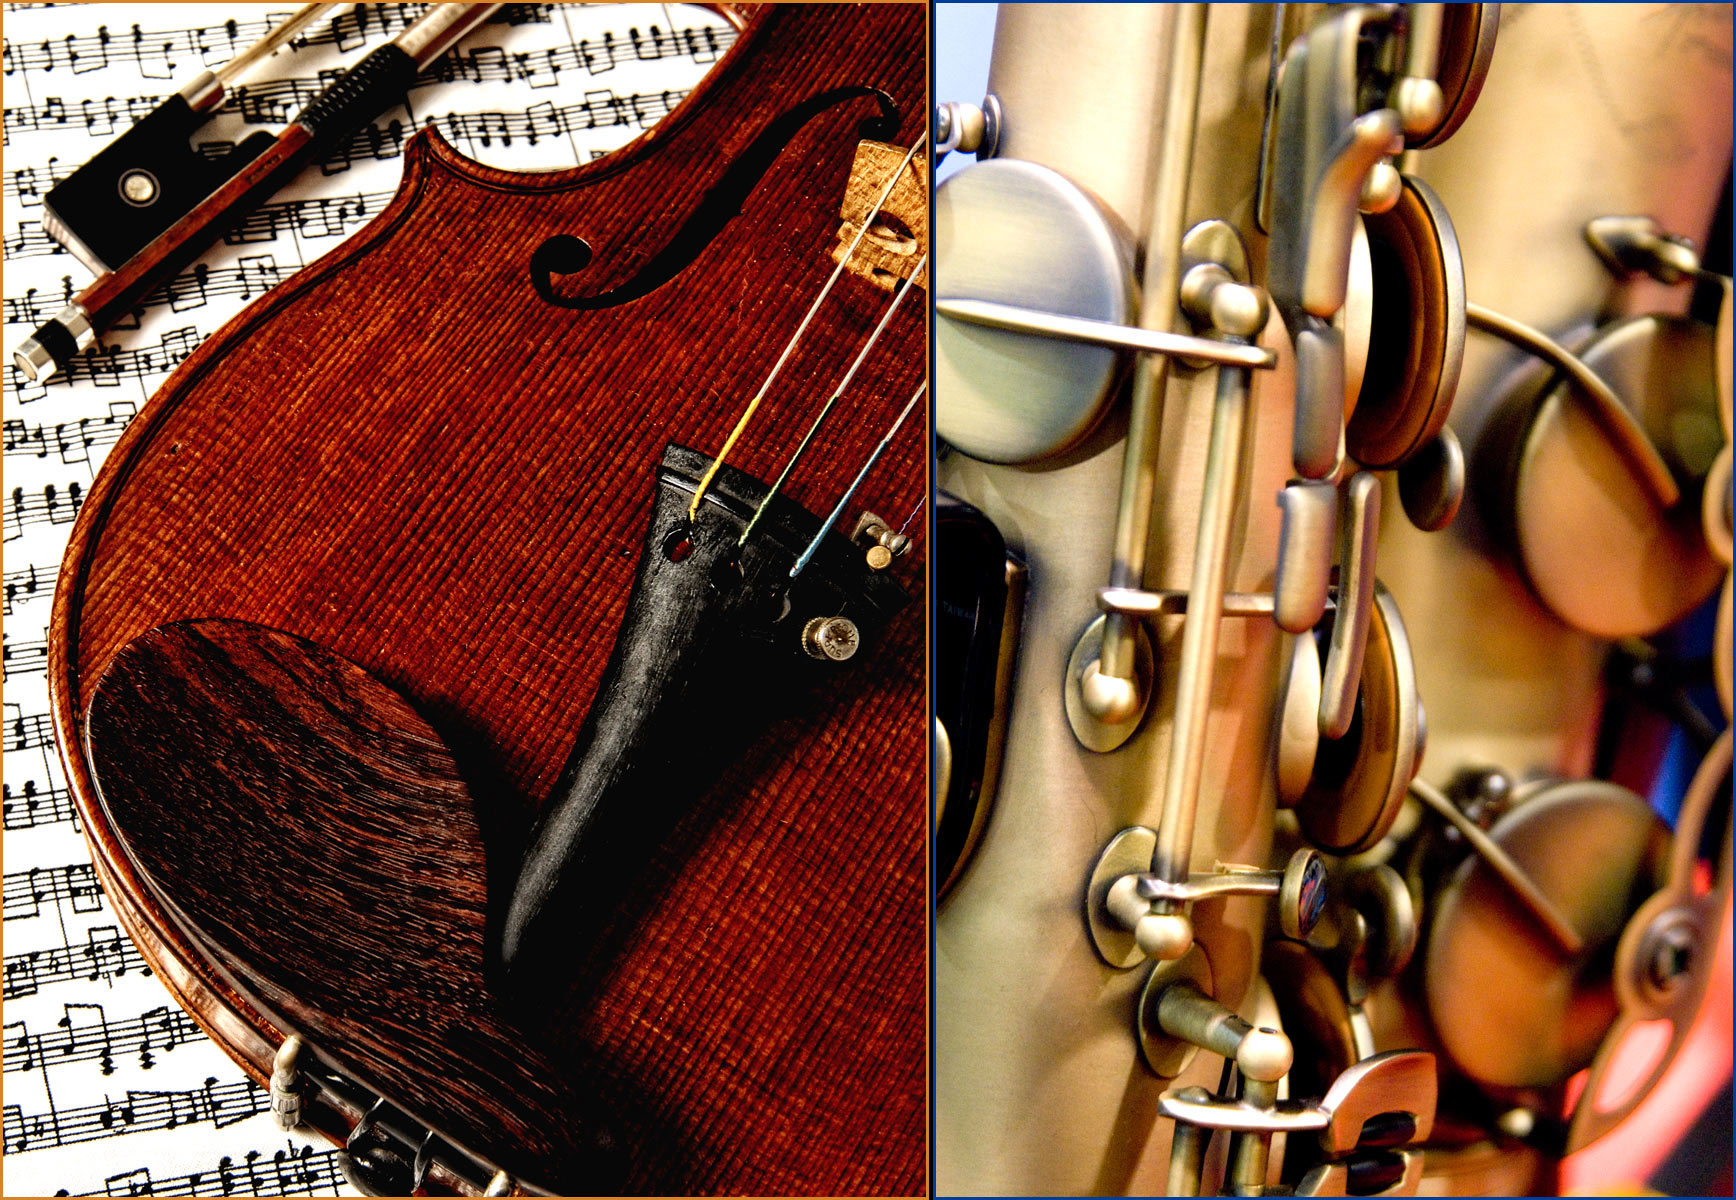 Violin Brass-Musicman Photography